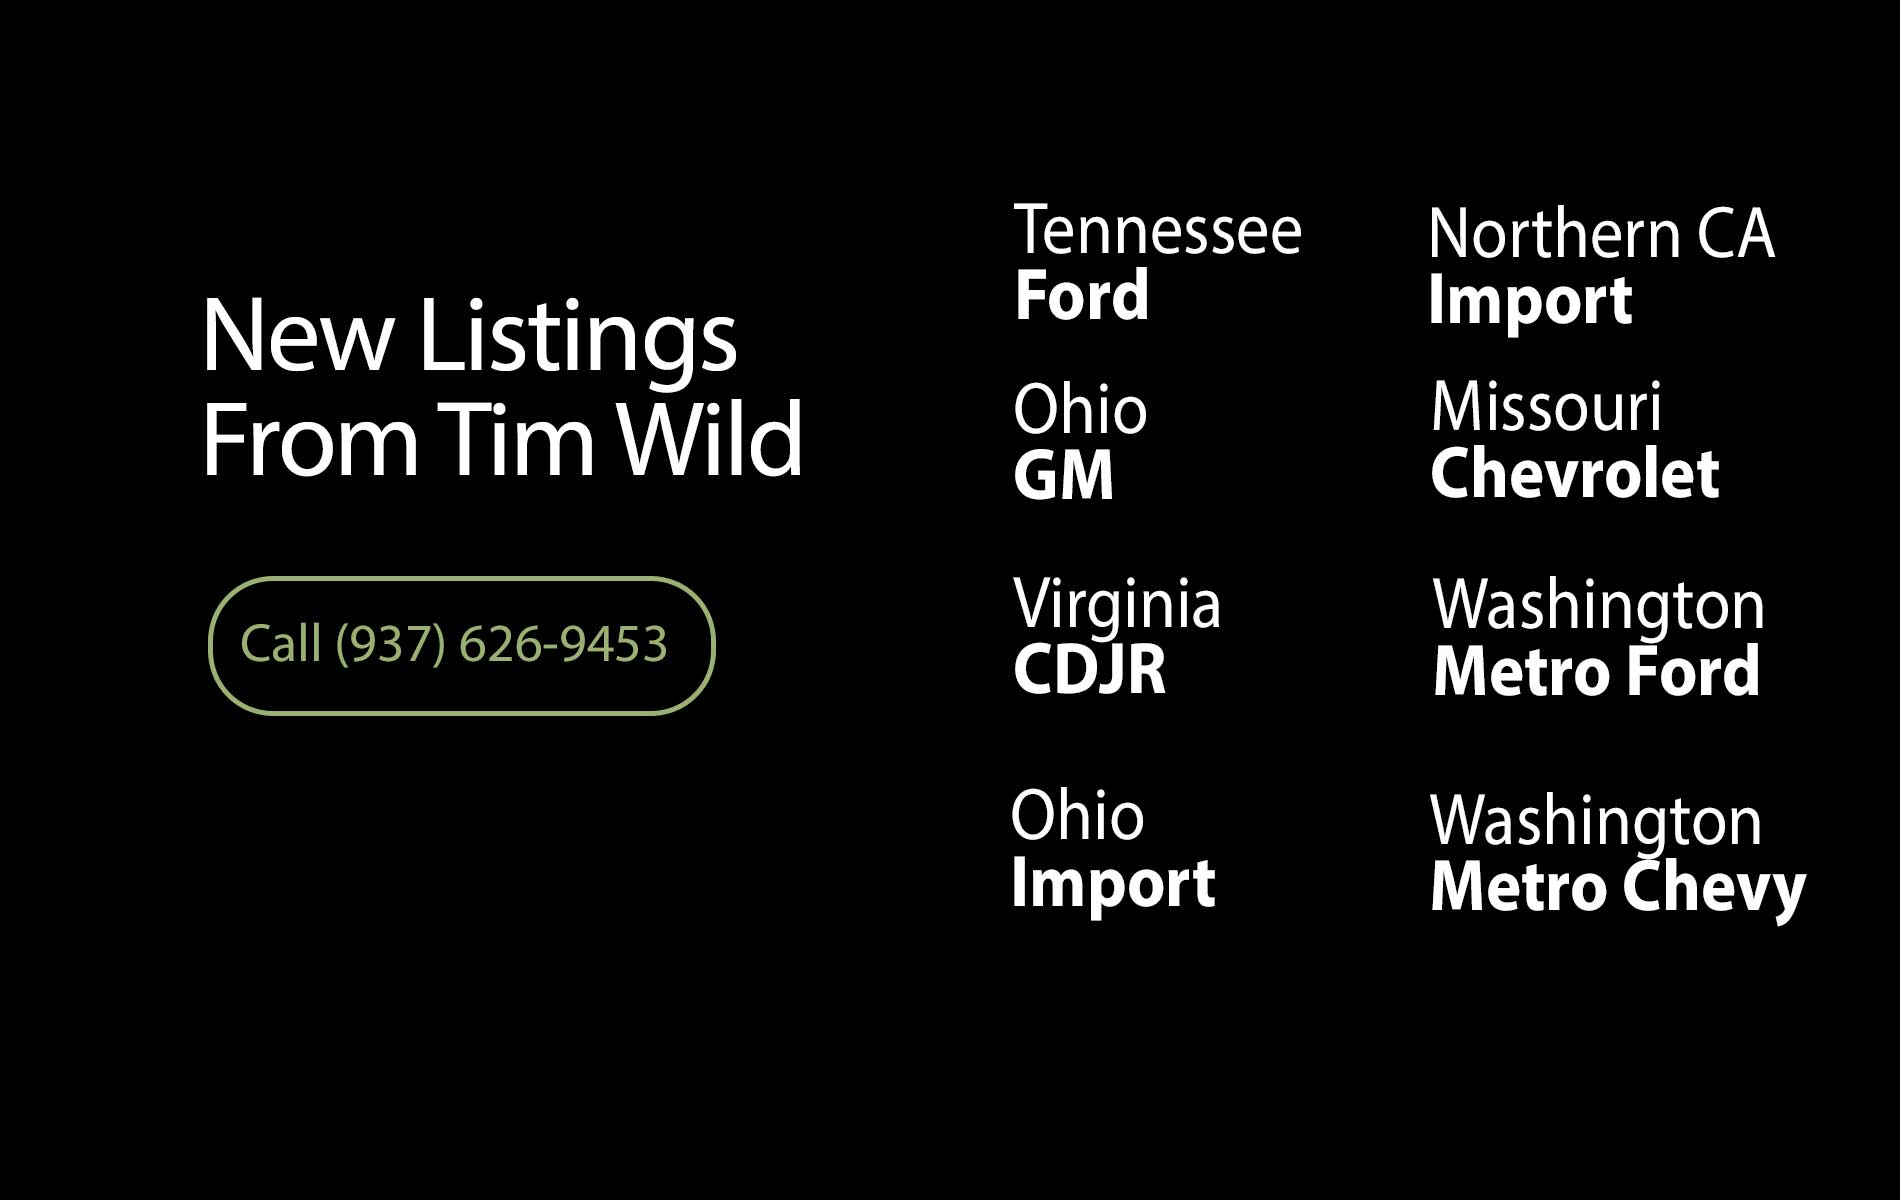 TIM-WILD-LISTING-SHOWCASE-1900x1200-9-5-2019-rev